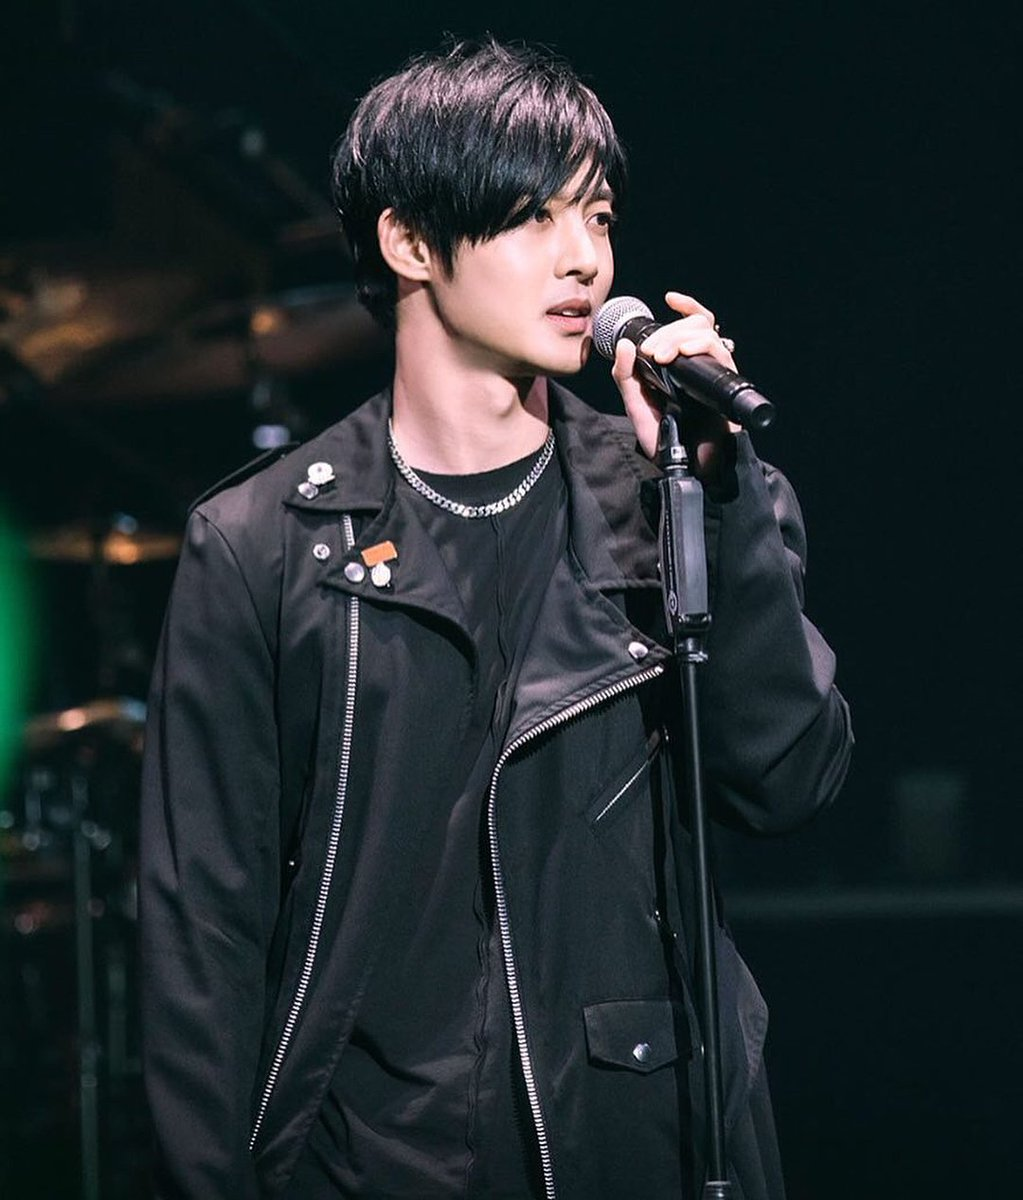 [Photo] Kim Hyun Joong Japan Mobile Site Update [2017.08.25]